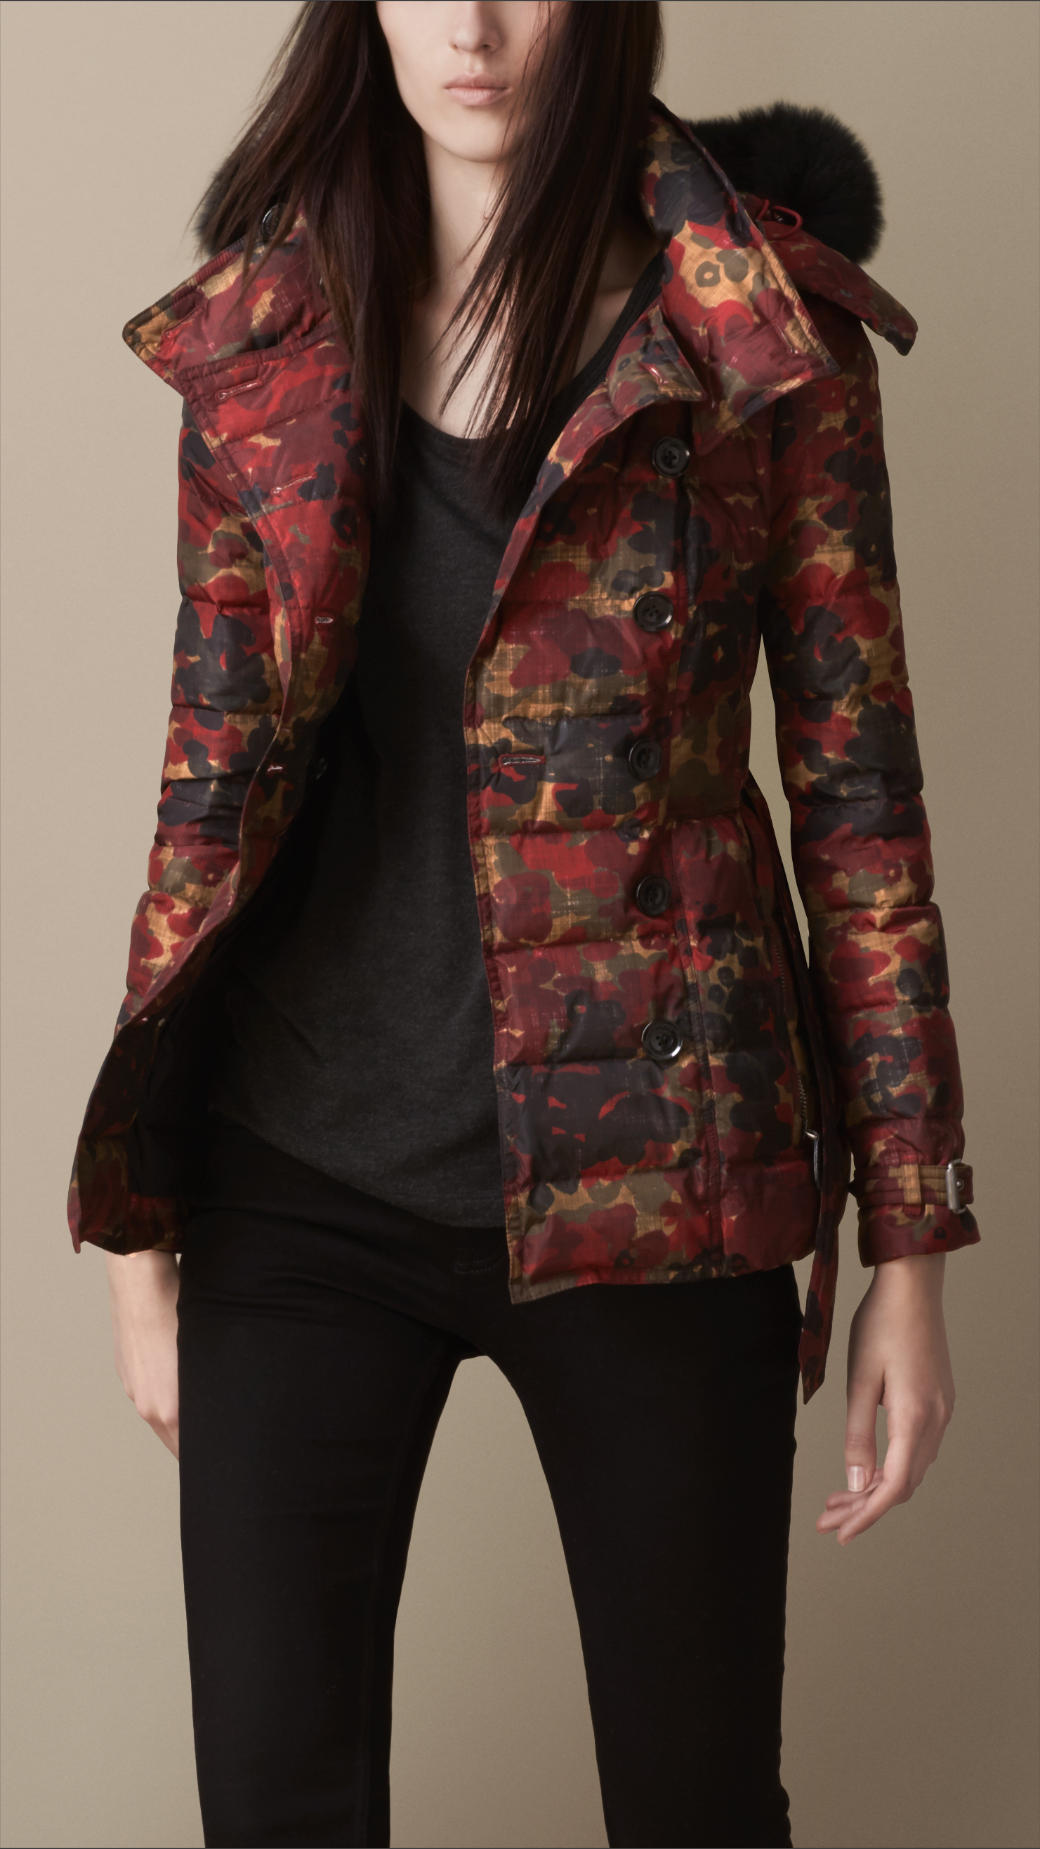 f353bc007580 Lyst - Burberry Abstract Camouflage Print Puffer Jacket with Fur ...